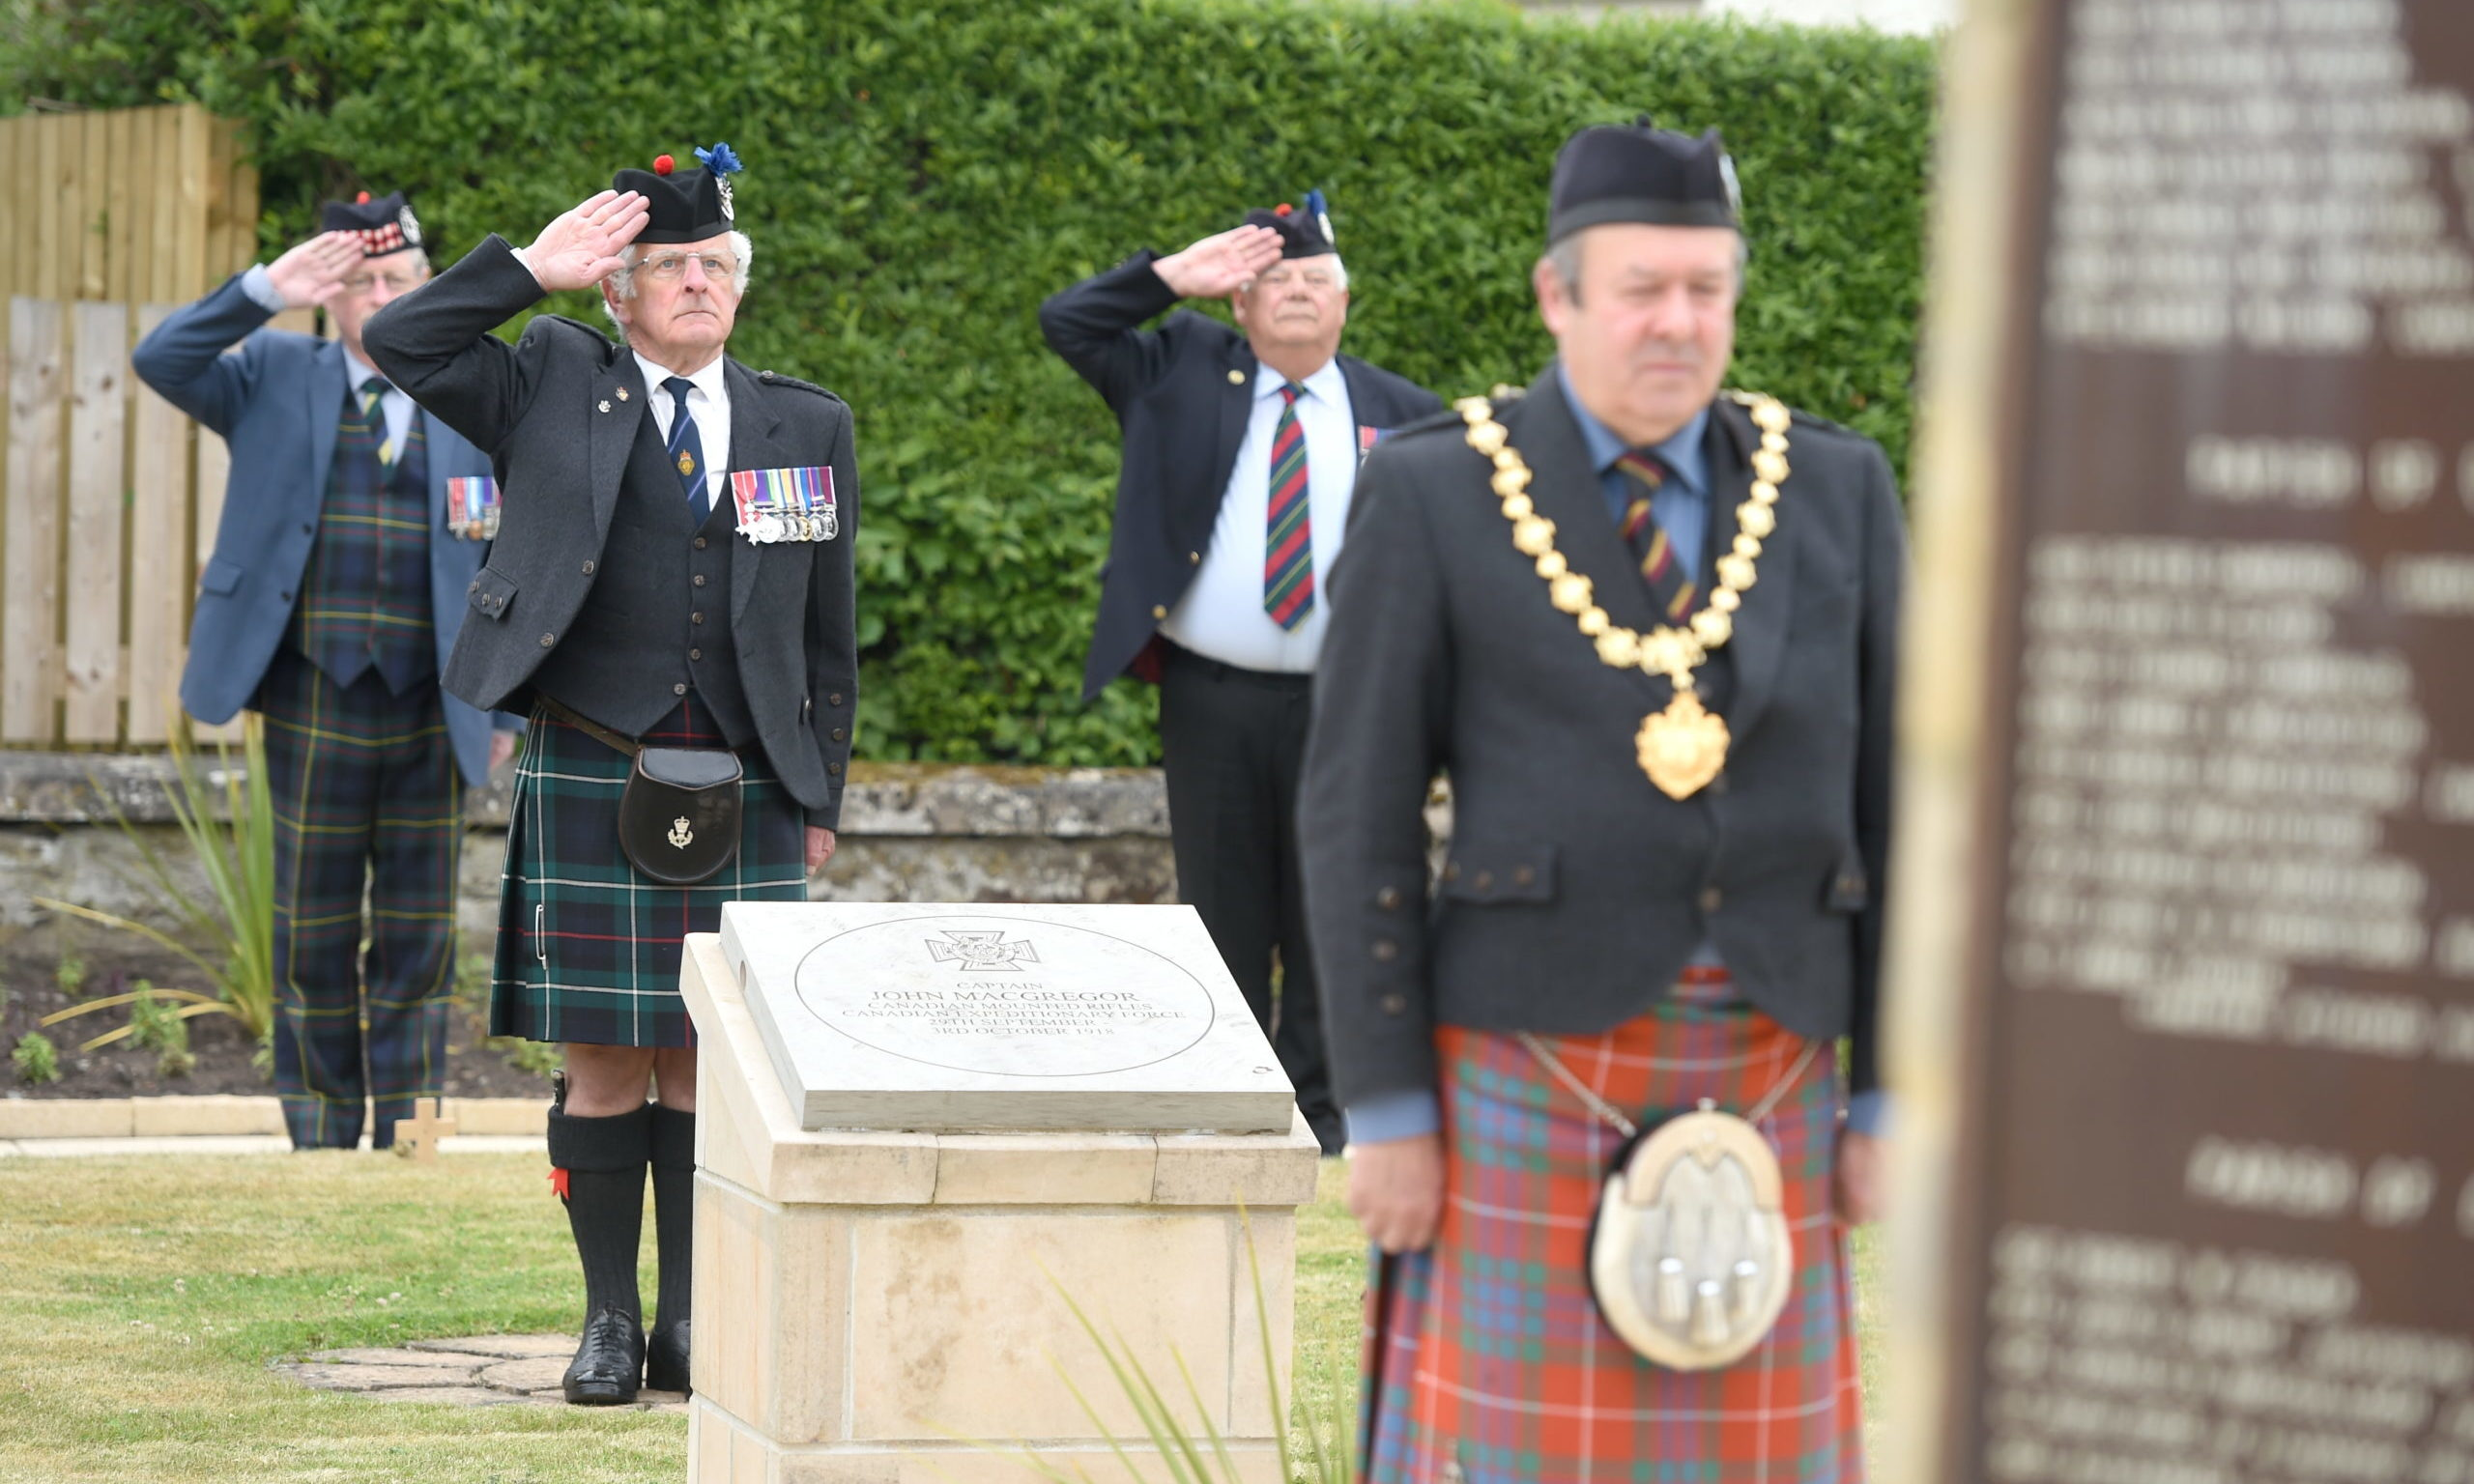 Lt Col Bob Towns leads the salute at the war memorial as Councillor Laurie Fraser lays a wreath. Picture by Sandy McCook